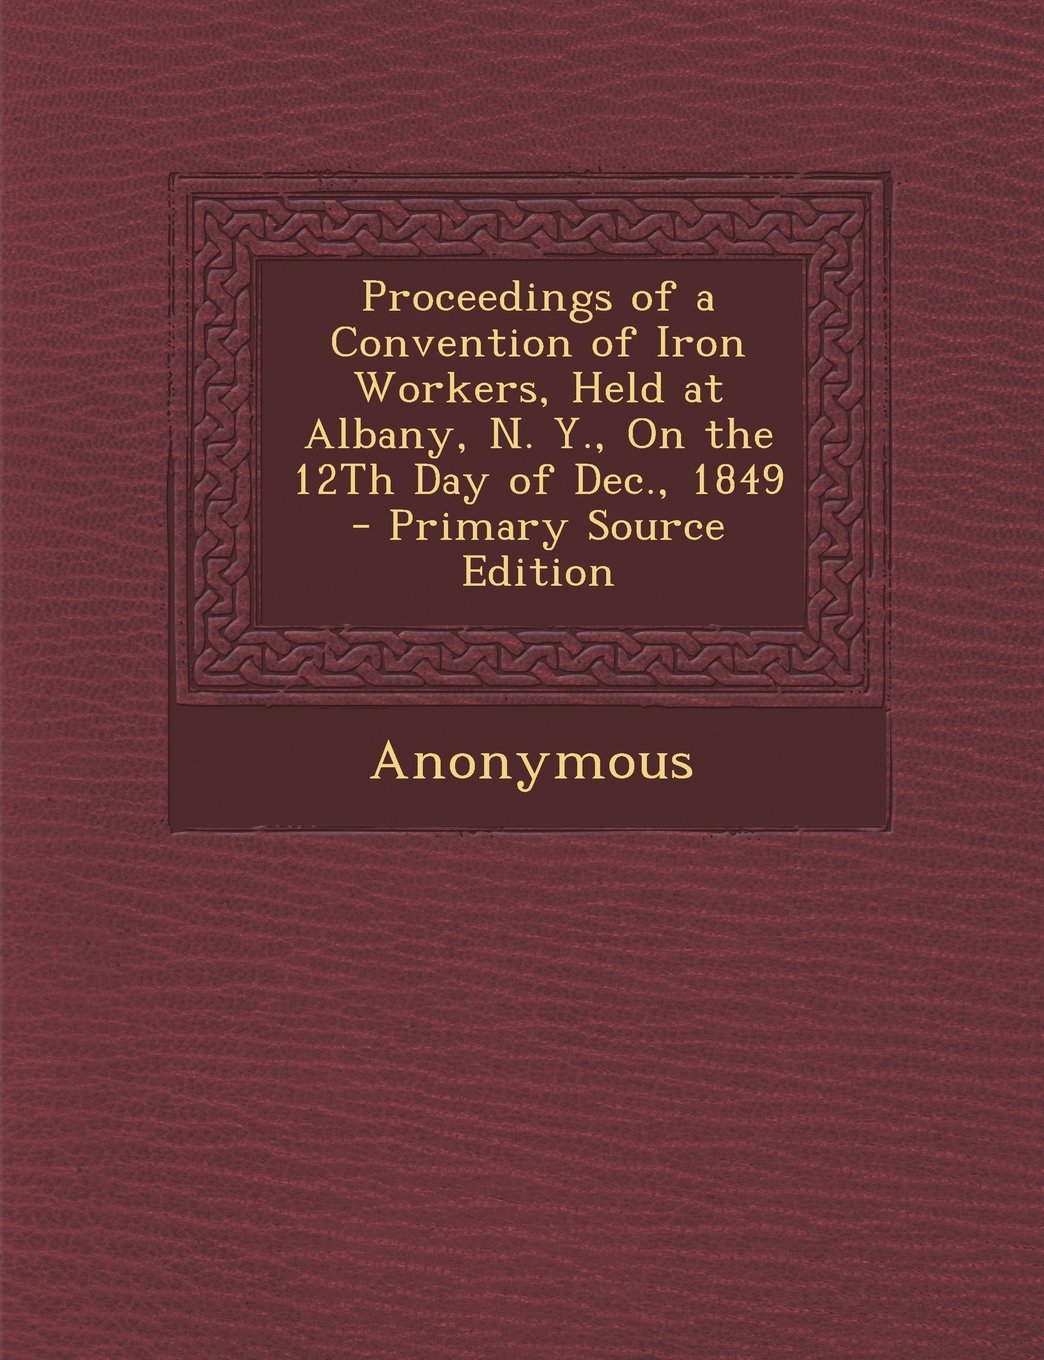 Read Online Proceedings of a Convention of Iron Workers, Held at Albany, N. Y., on the 12th Day of Dec., 1849 - Primary Source Edition PDF